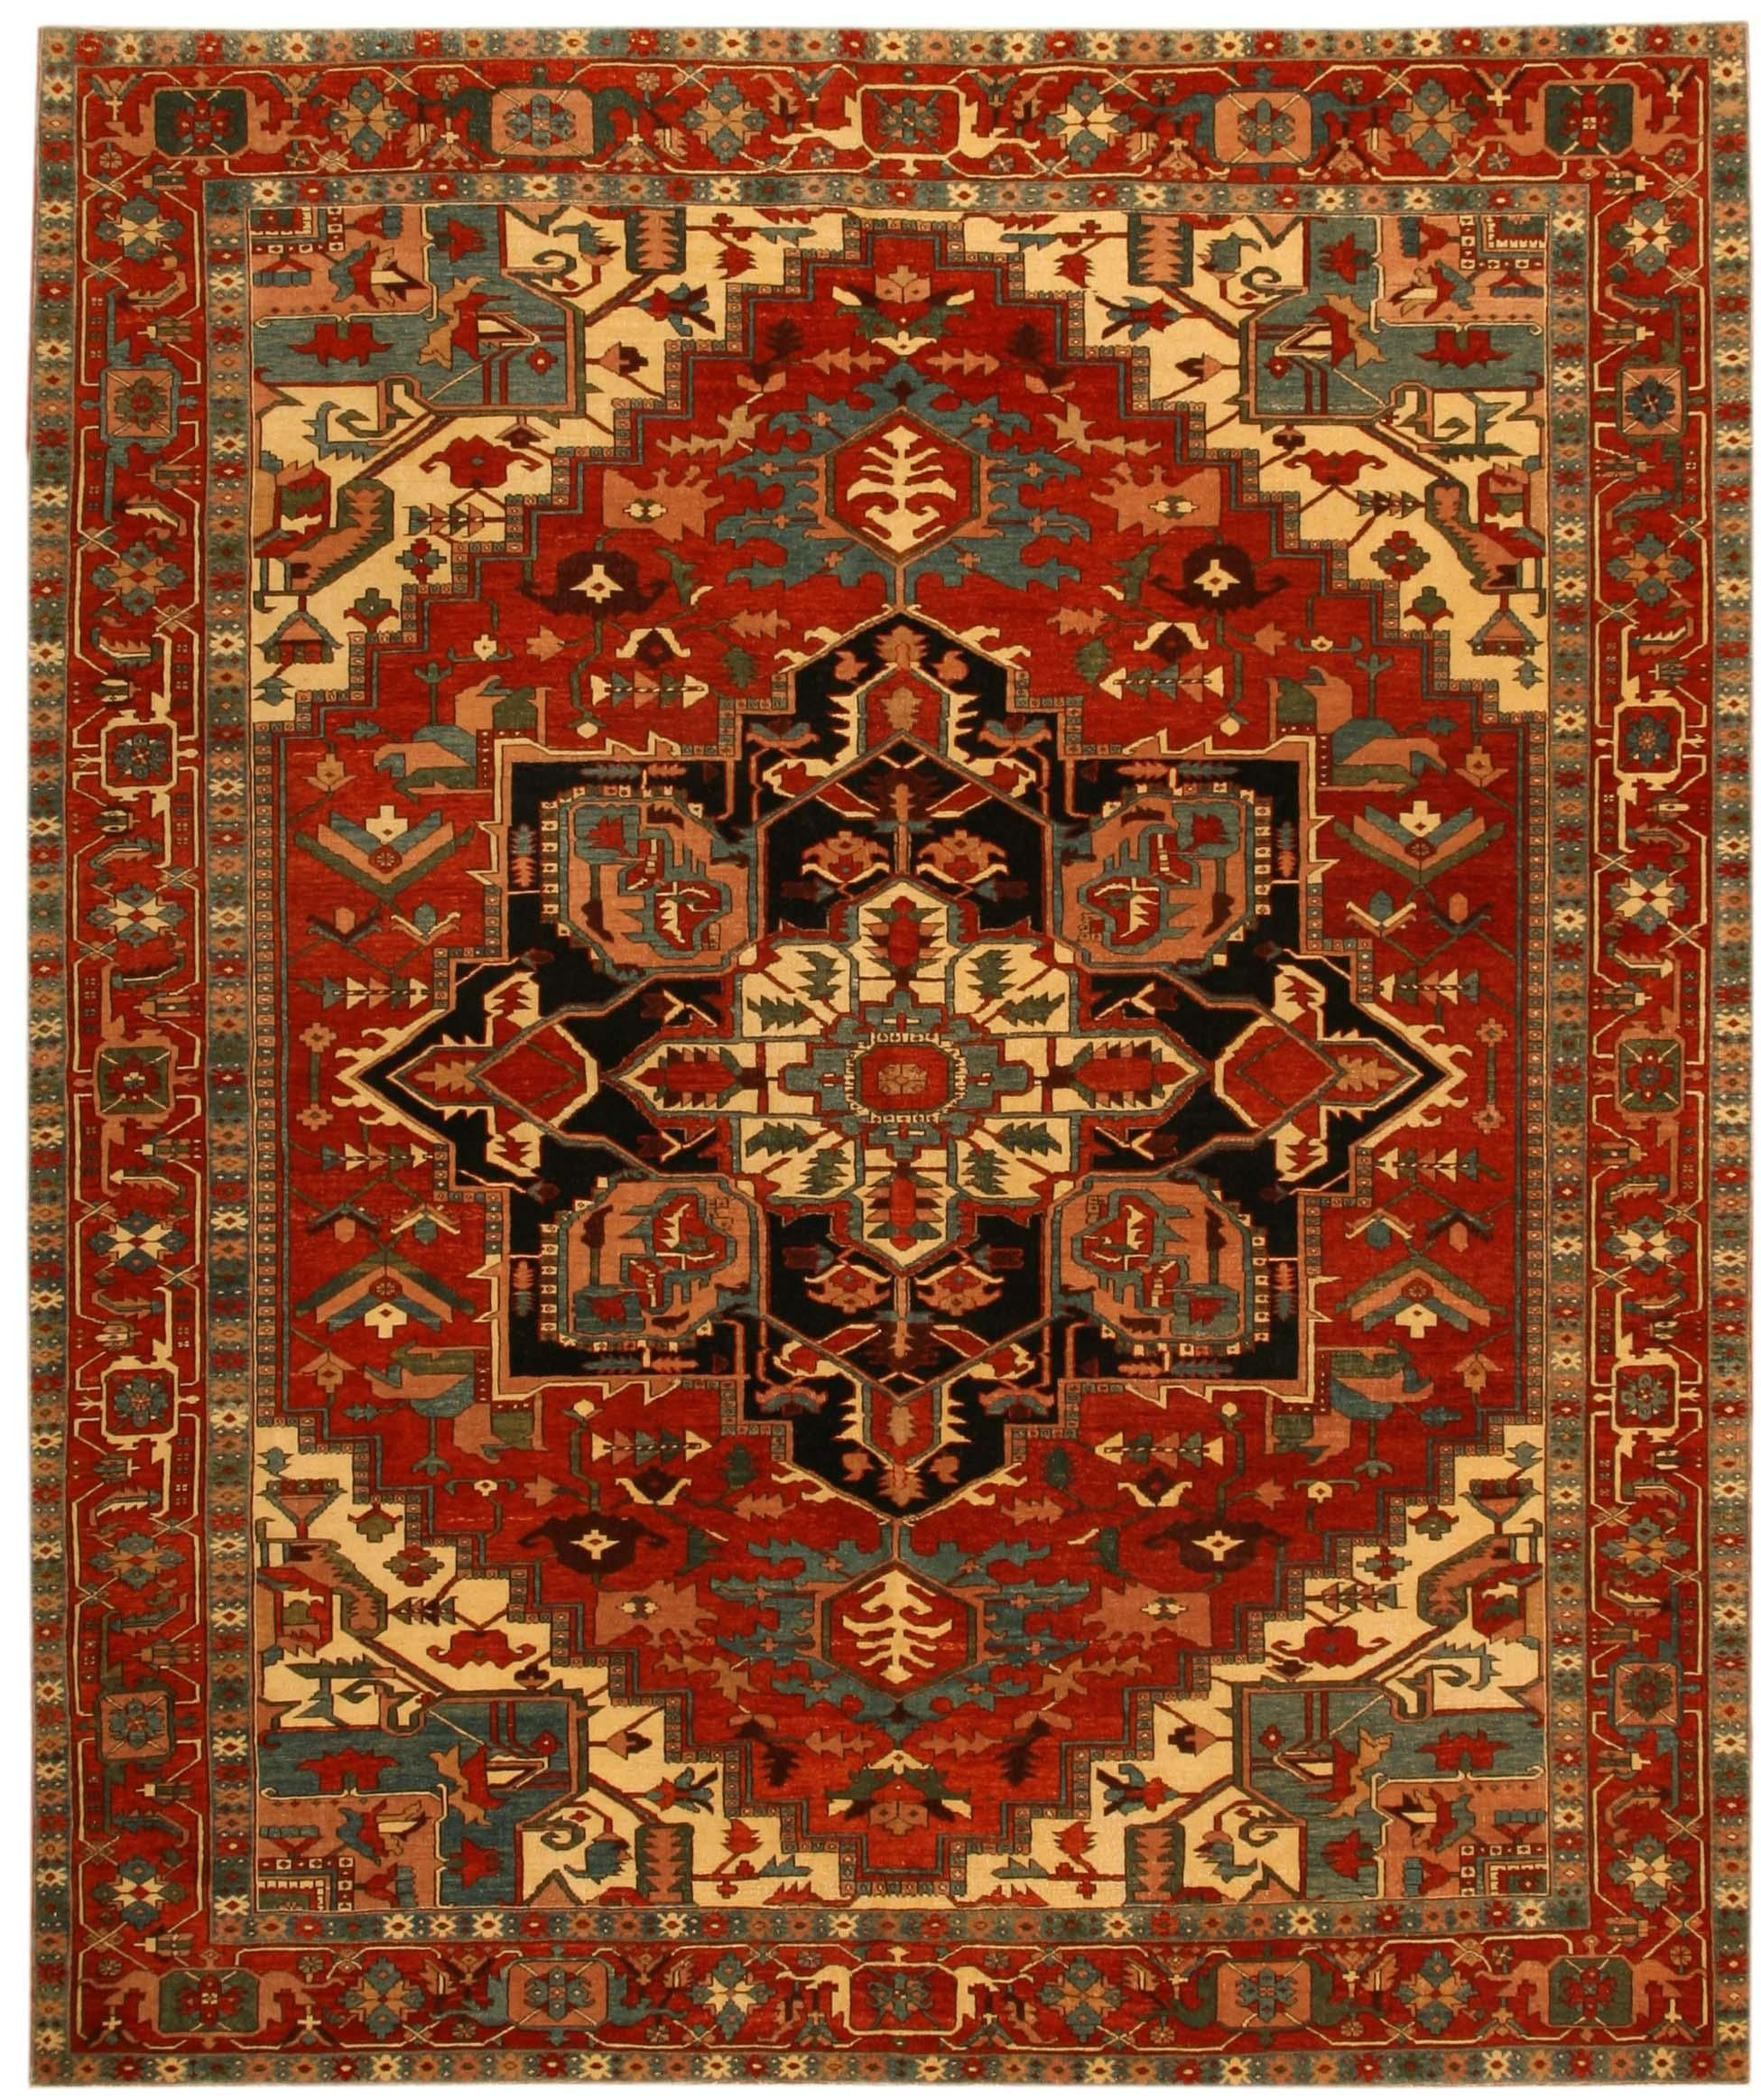 Geometry And Patterns This Hand Woven Turkish Rug Shows The